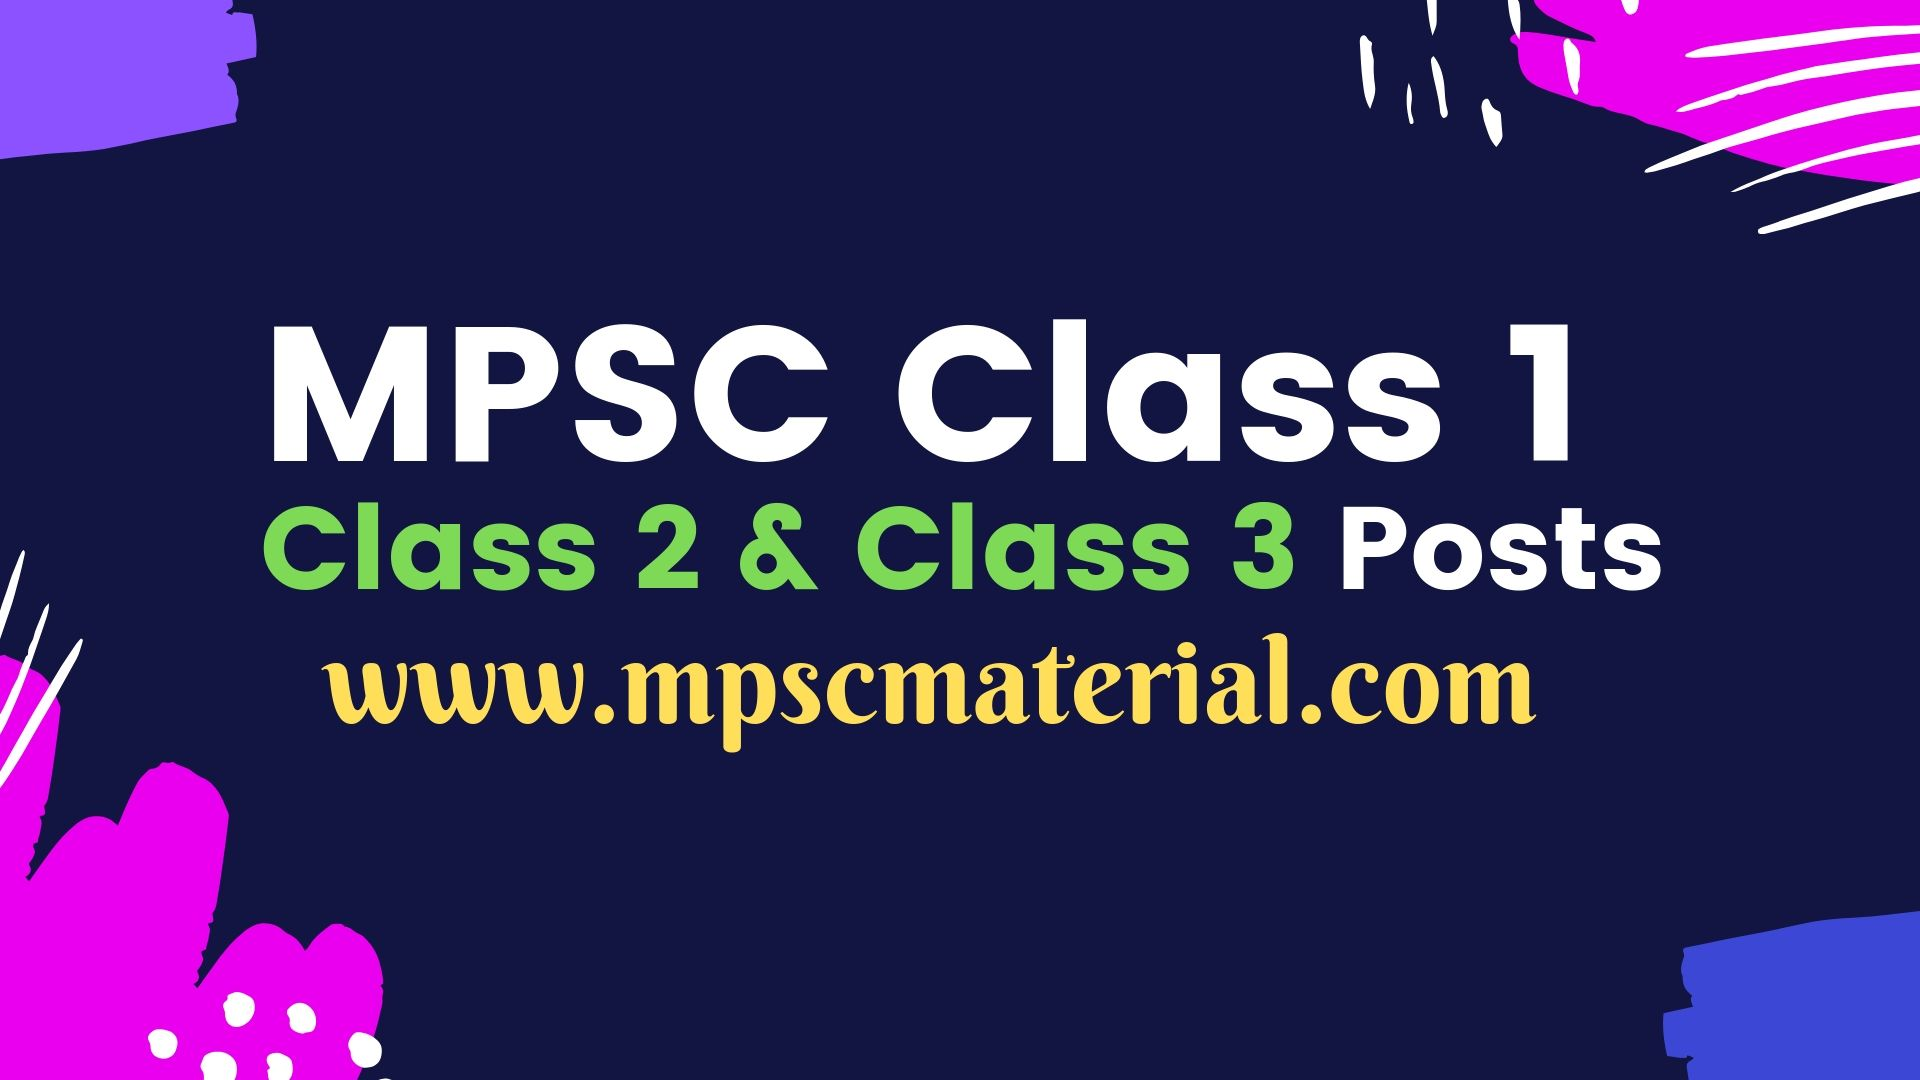 mpsc class 1 officers posts, mpsc class 3 posts